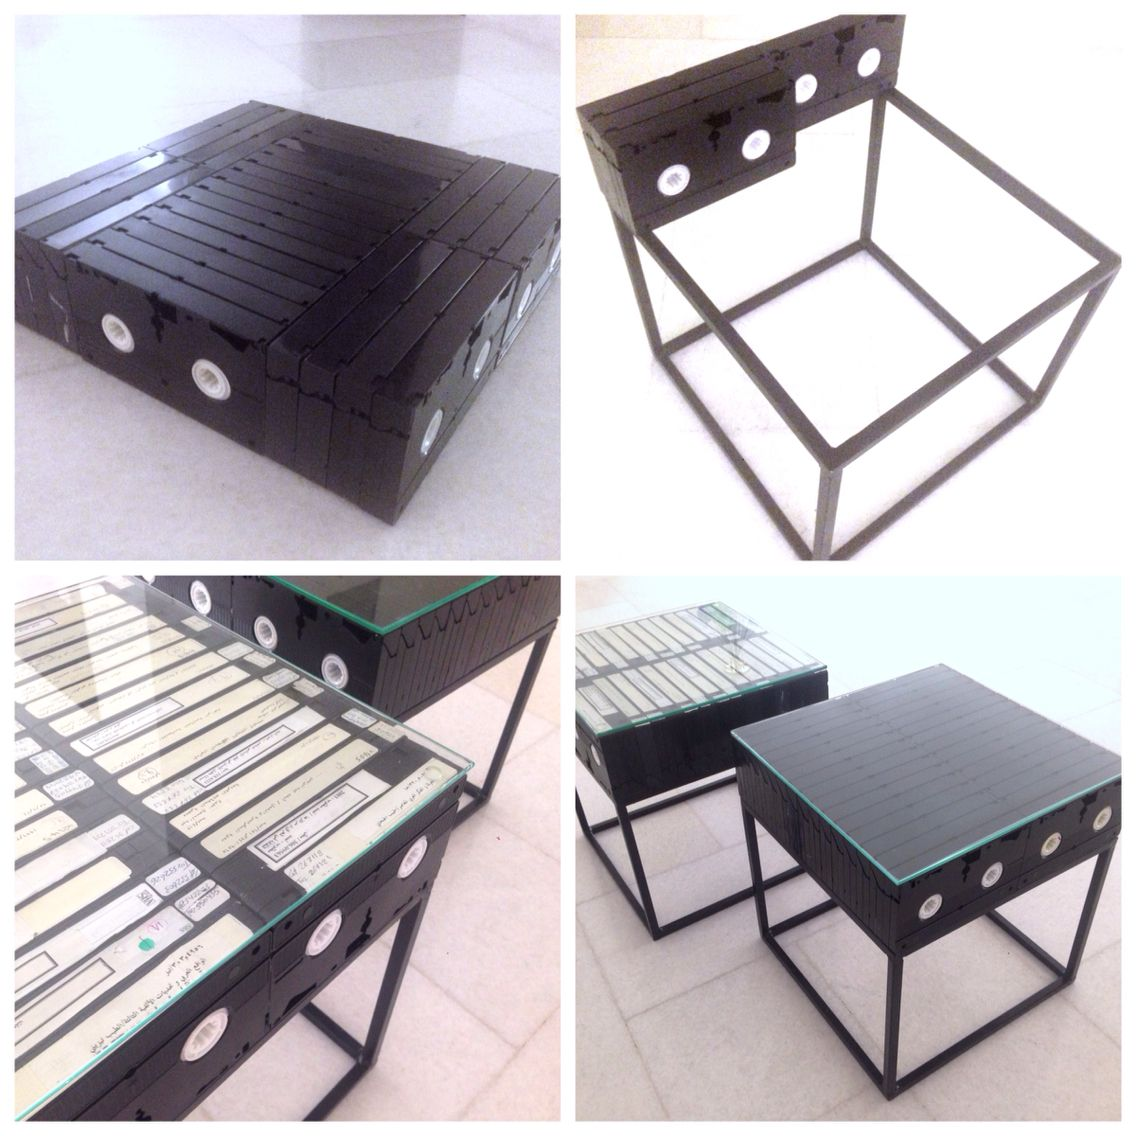 Vhs tapes and steel coffee table